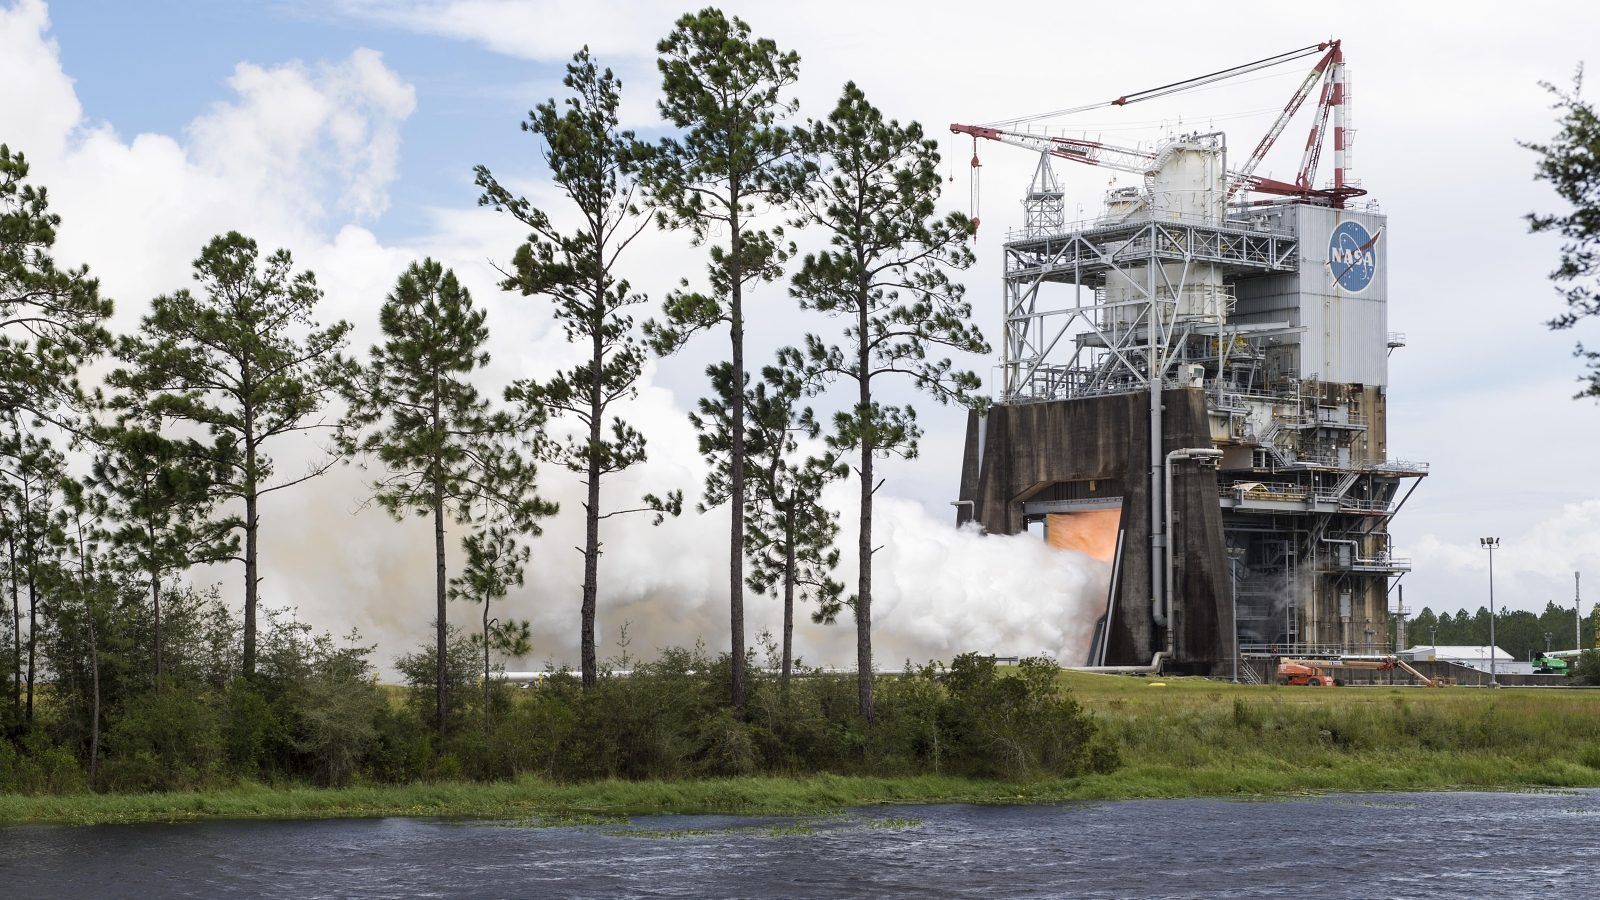 RS-25 engine test on August 30, 2017